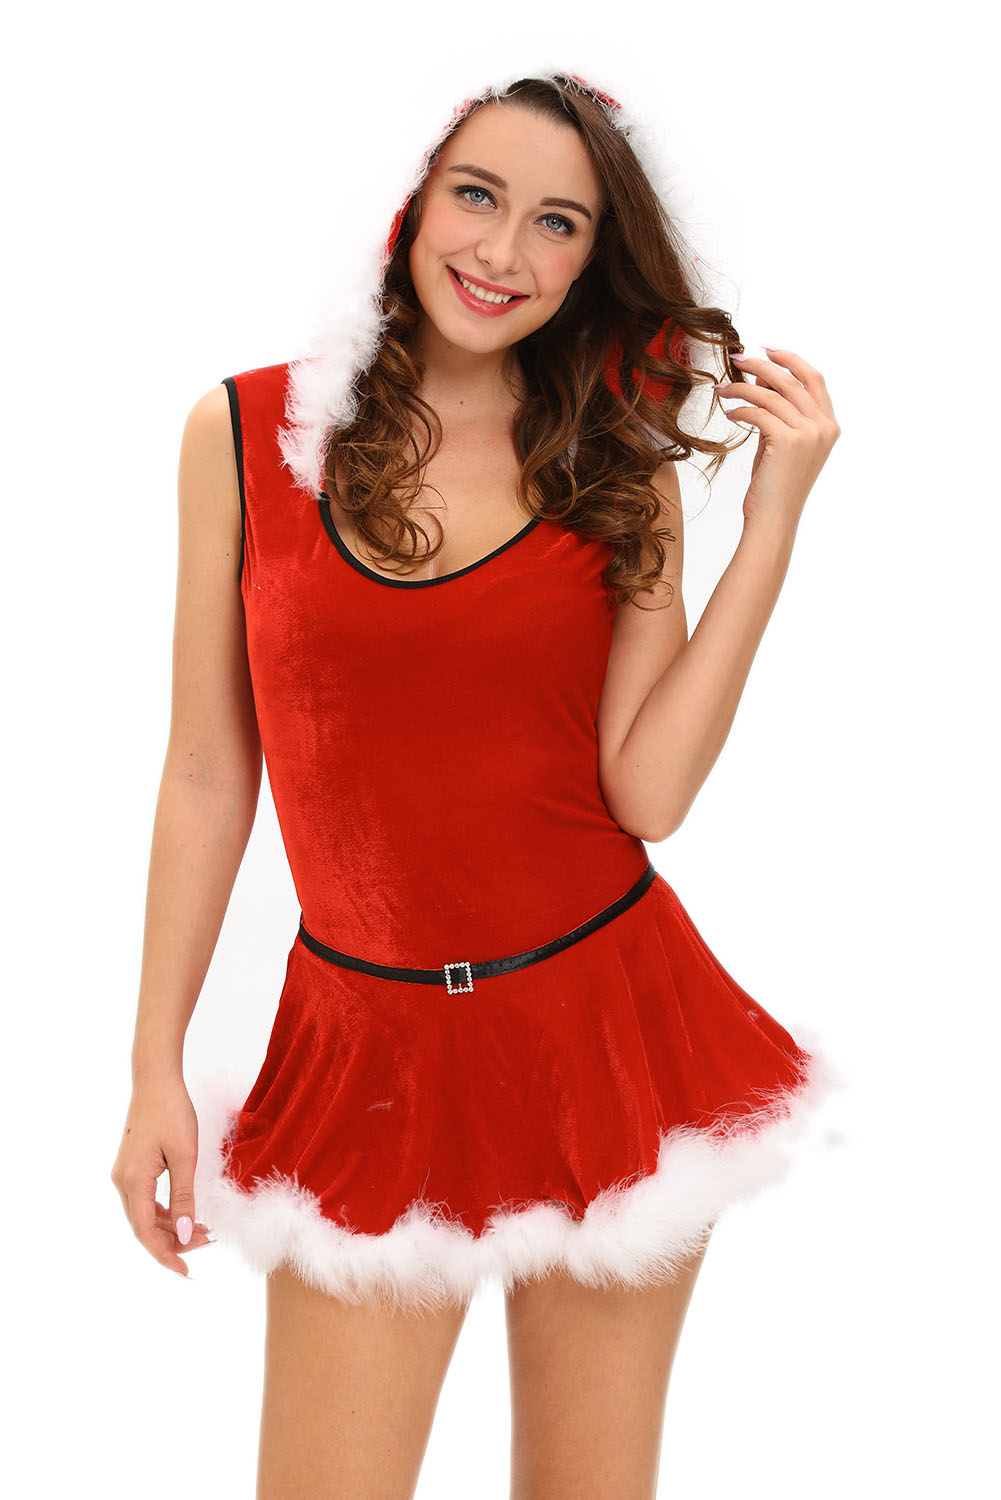 Plus Size Christmas Costumes.Plus Size Soft Fur Trim Red Santa Teddy And Skirt Christmas Costume